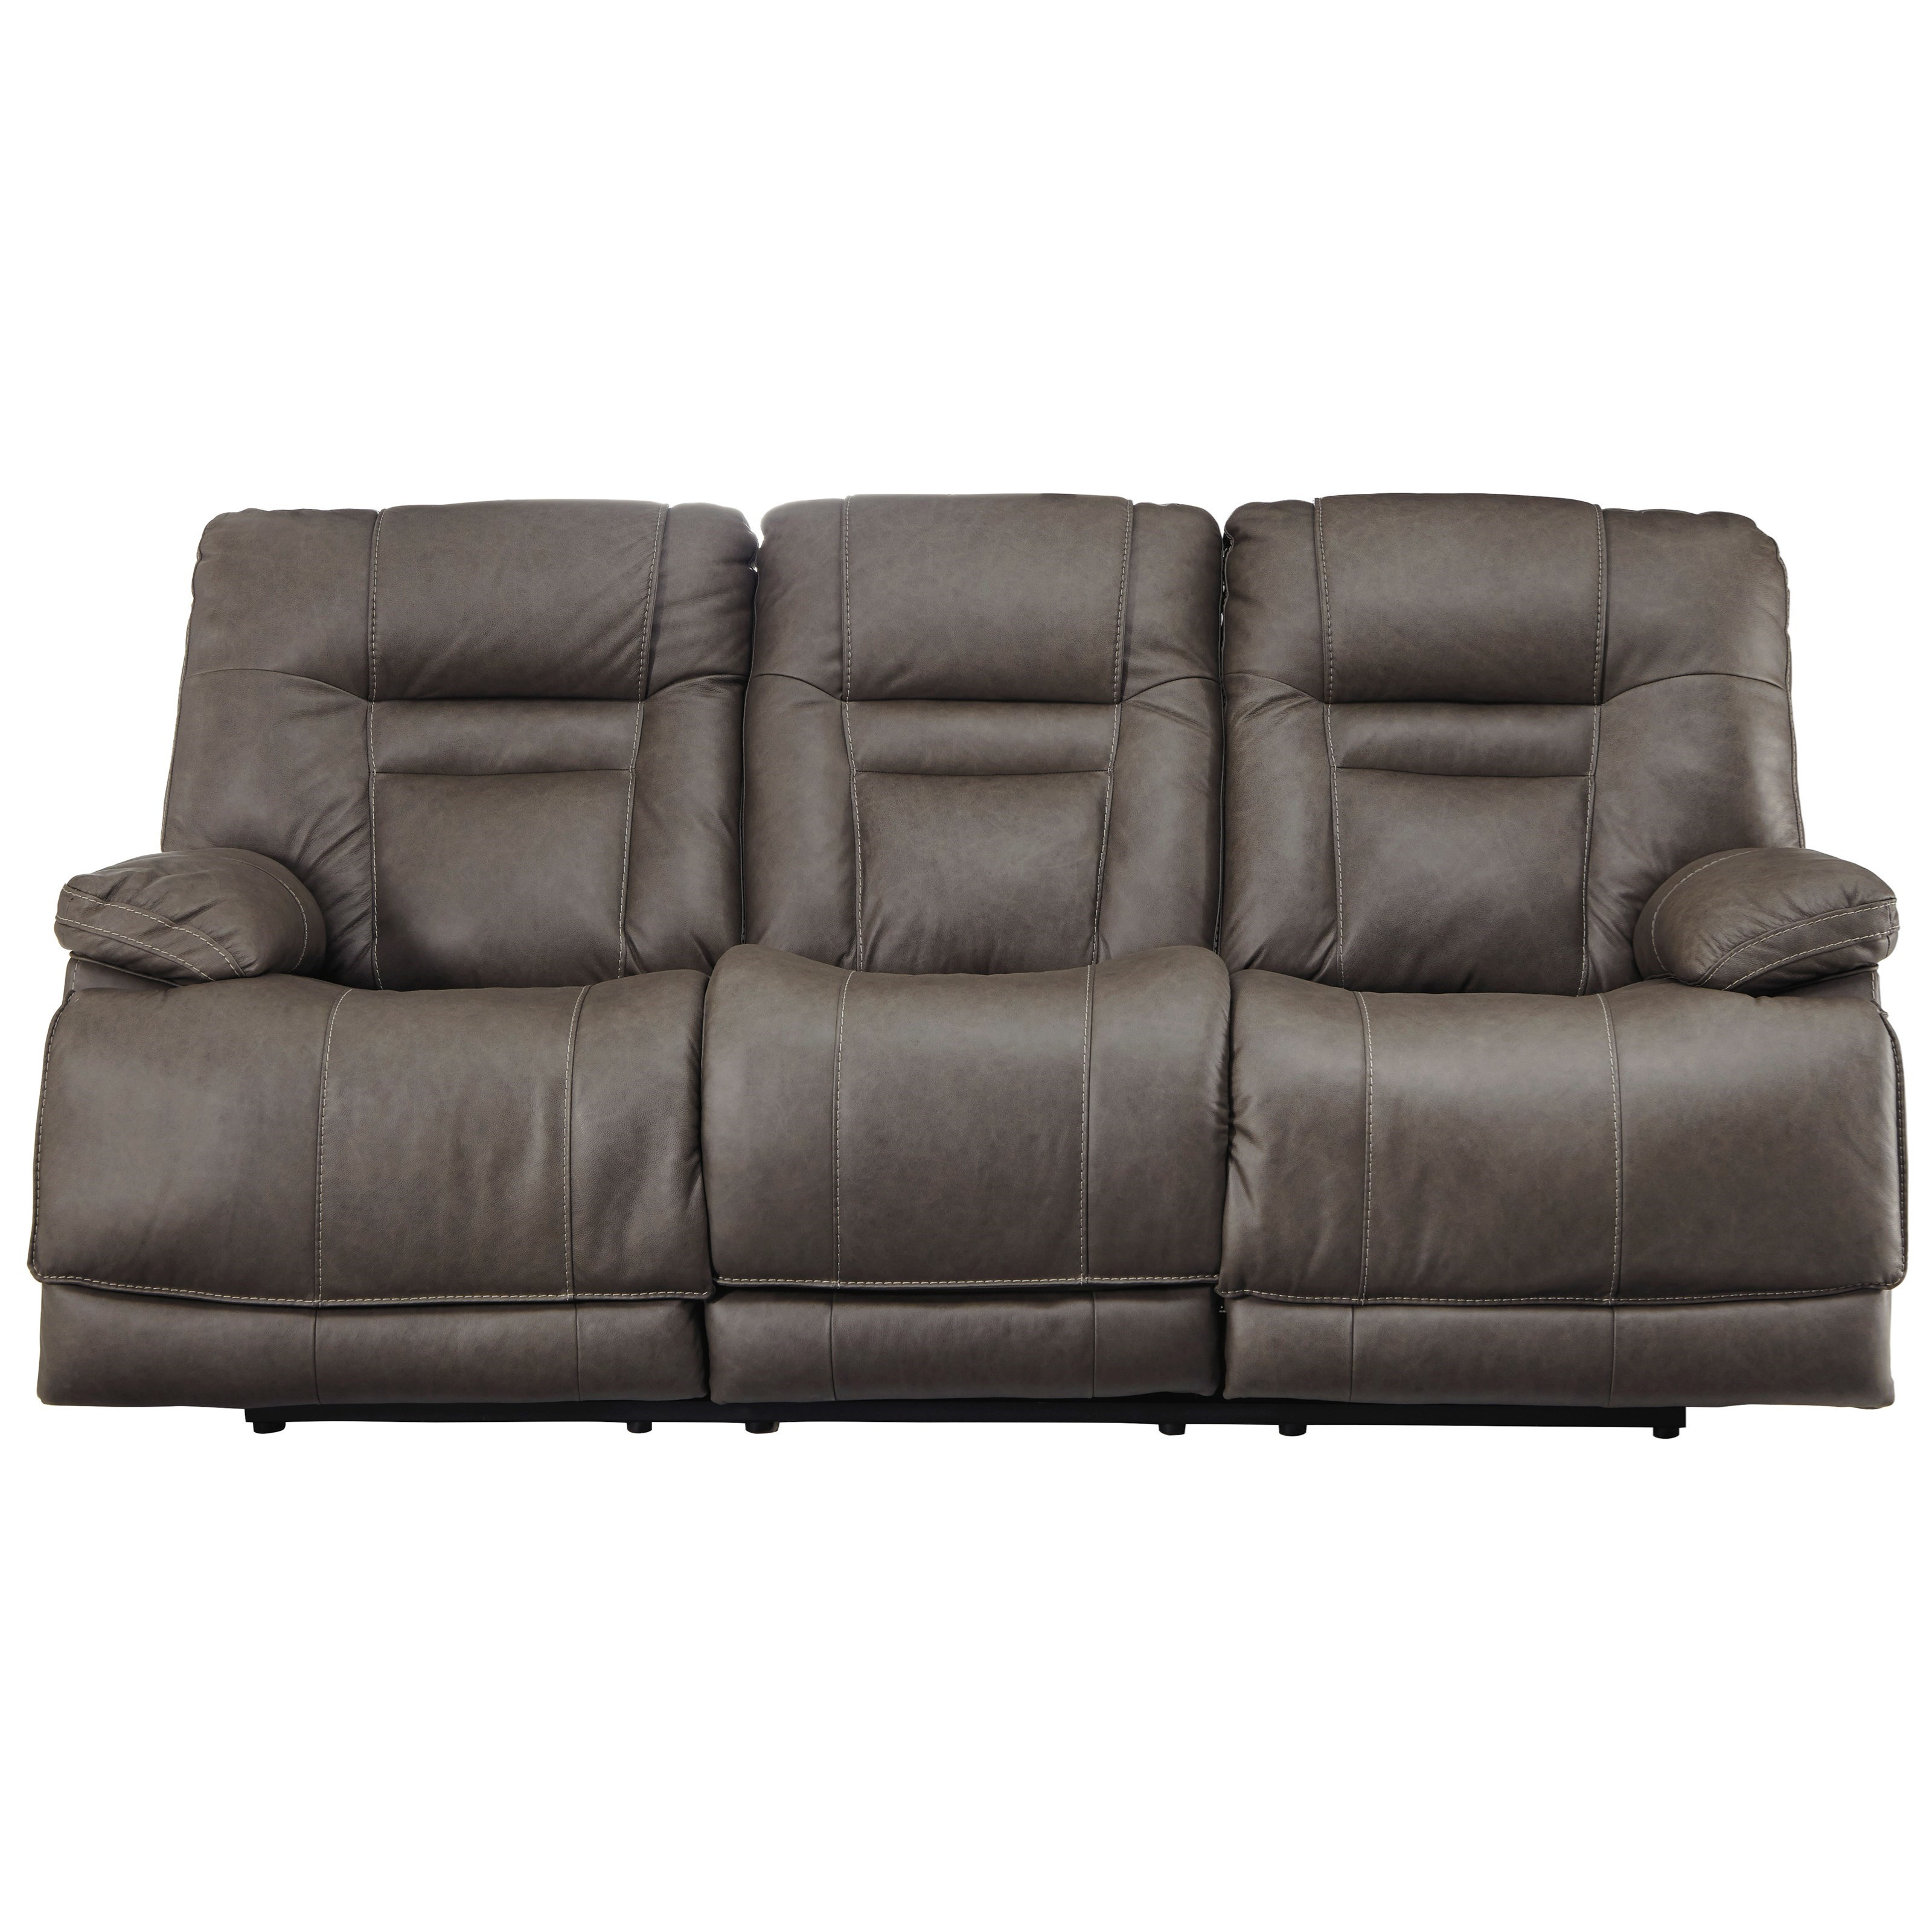 TRIPLE Power Reclining Leather Sofa